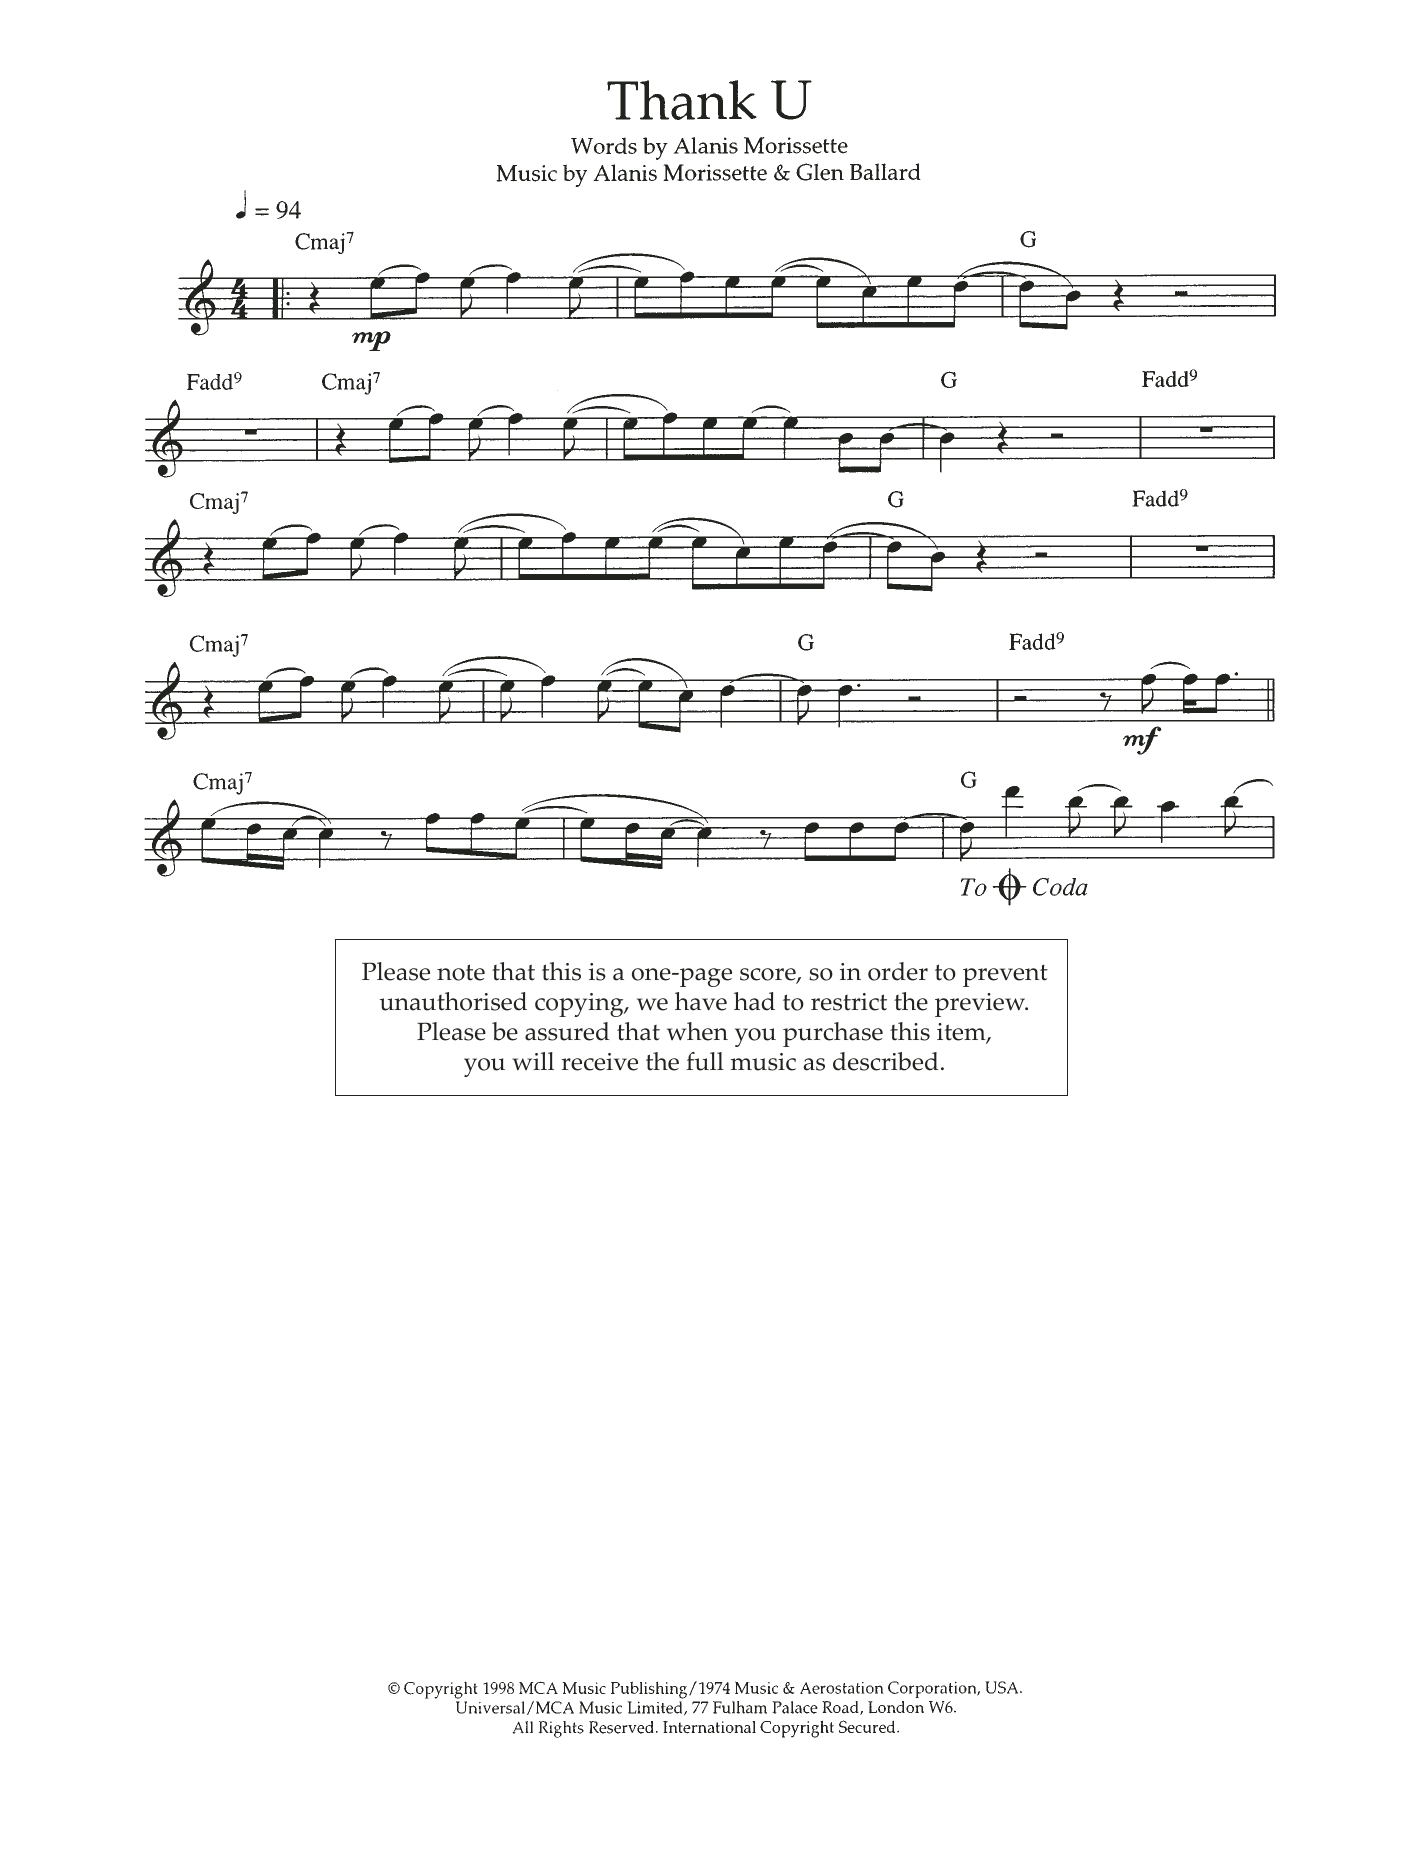 Thank U Sheet Music